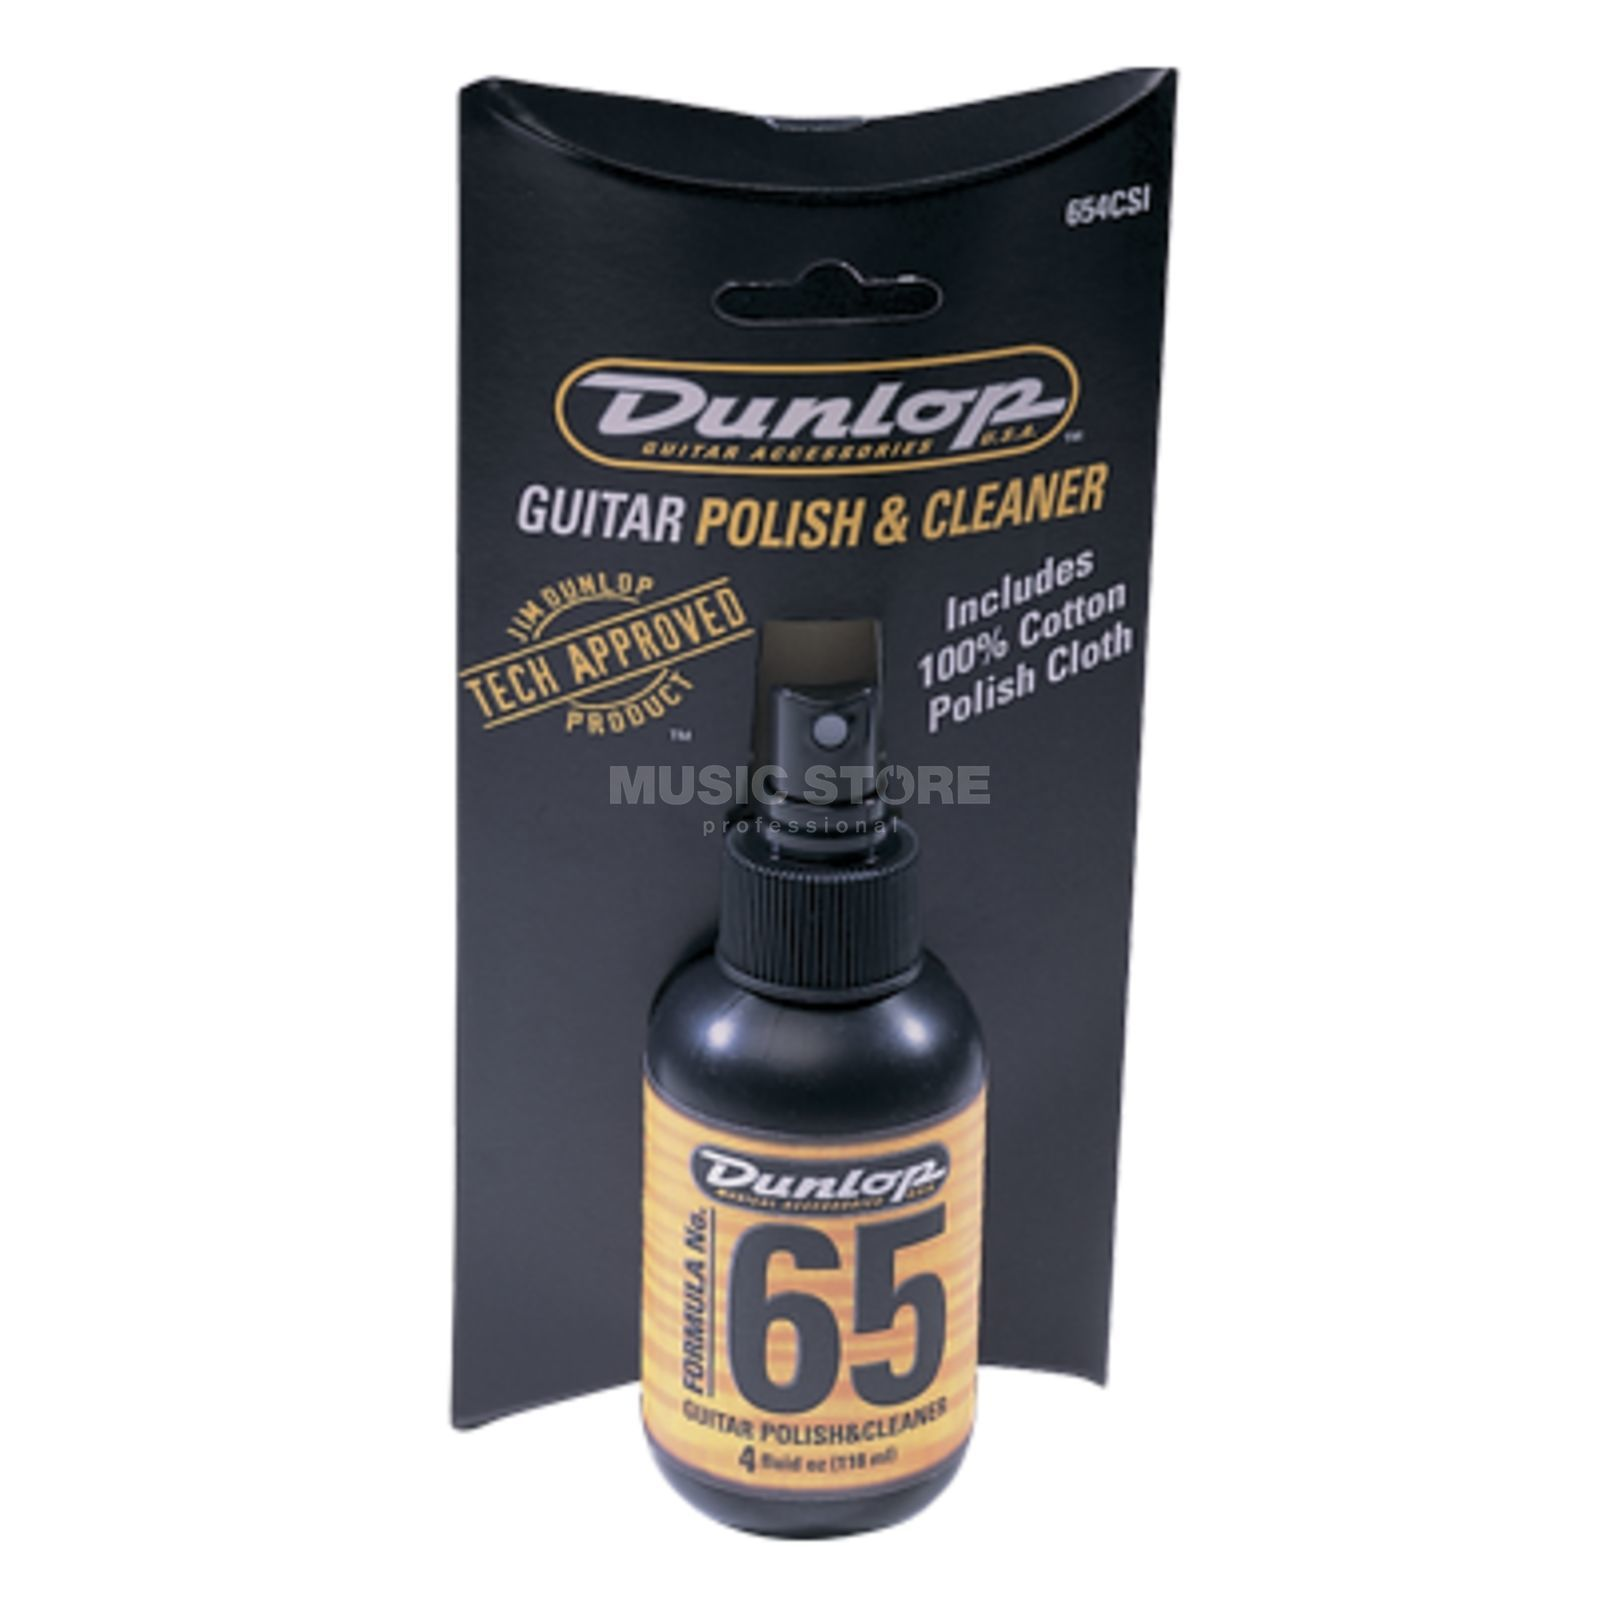 Dunlop Formula 65, Polish & Cleaner Polish Cloth, 654C Produktbillede